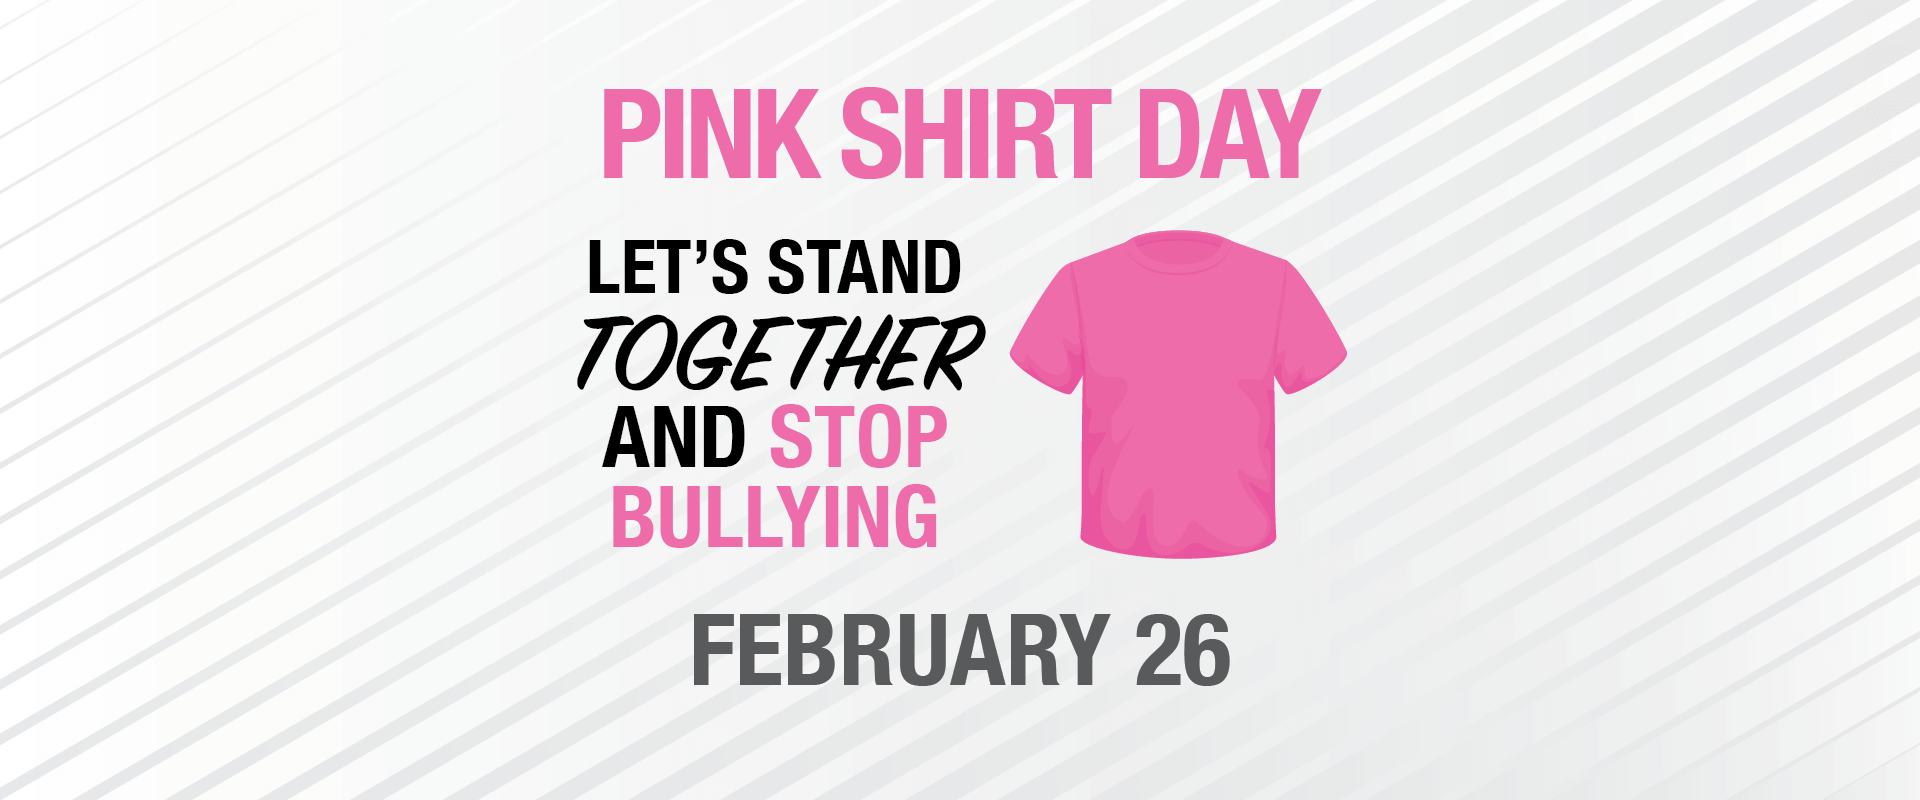 Pink Shirt Day - February 26